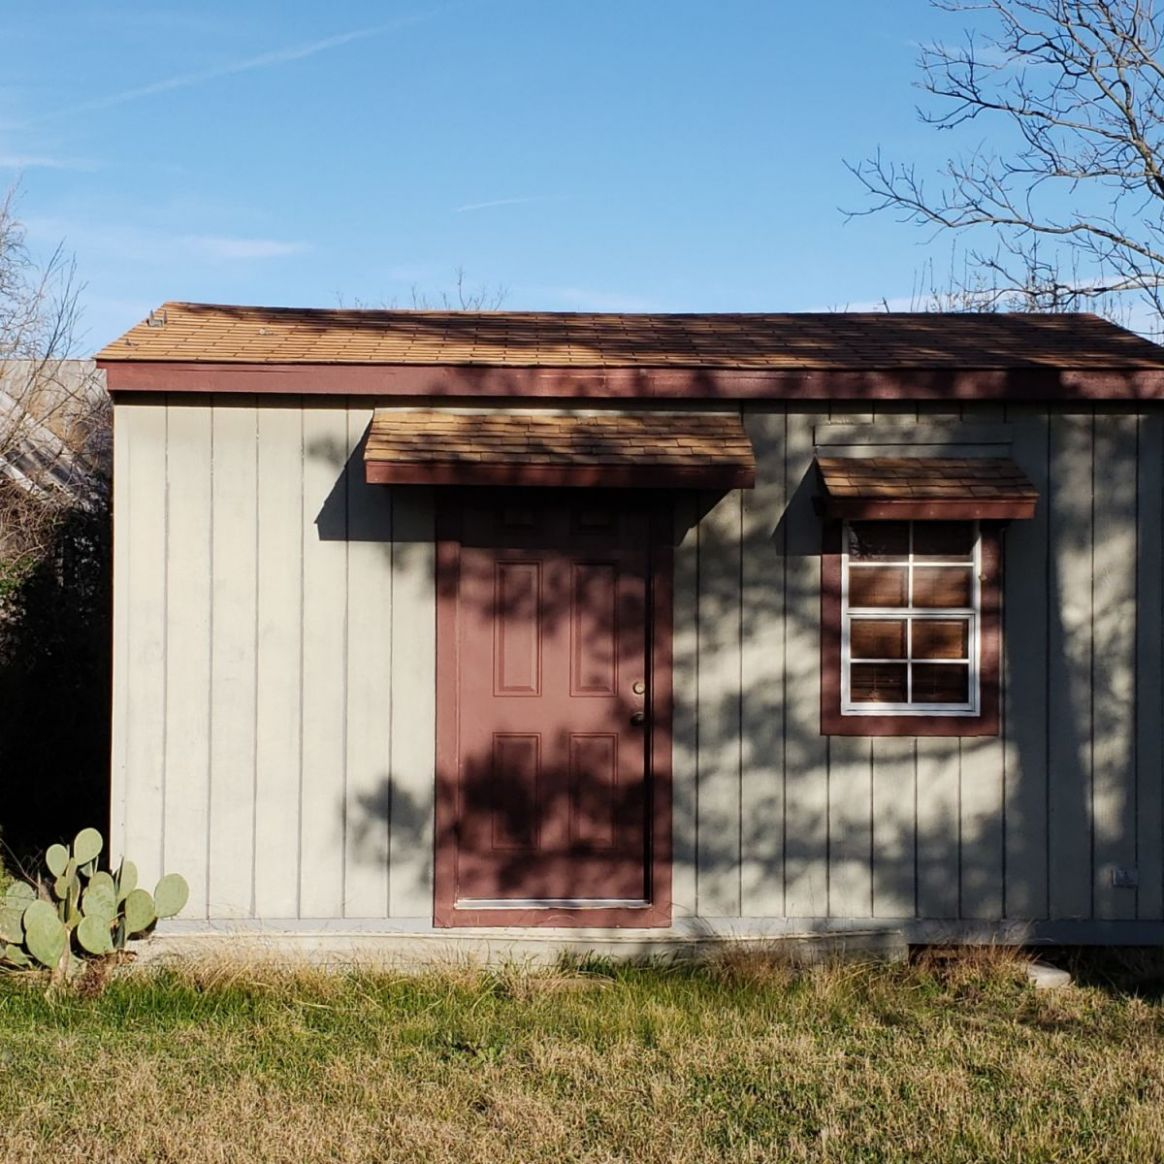 Move-in Ready Tiny House with Plumbing, Insulation, and Wiring - Tiny House  for Sale in Florence, Texas - Tiny House Listings